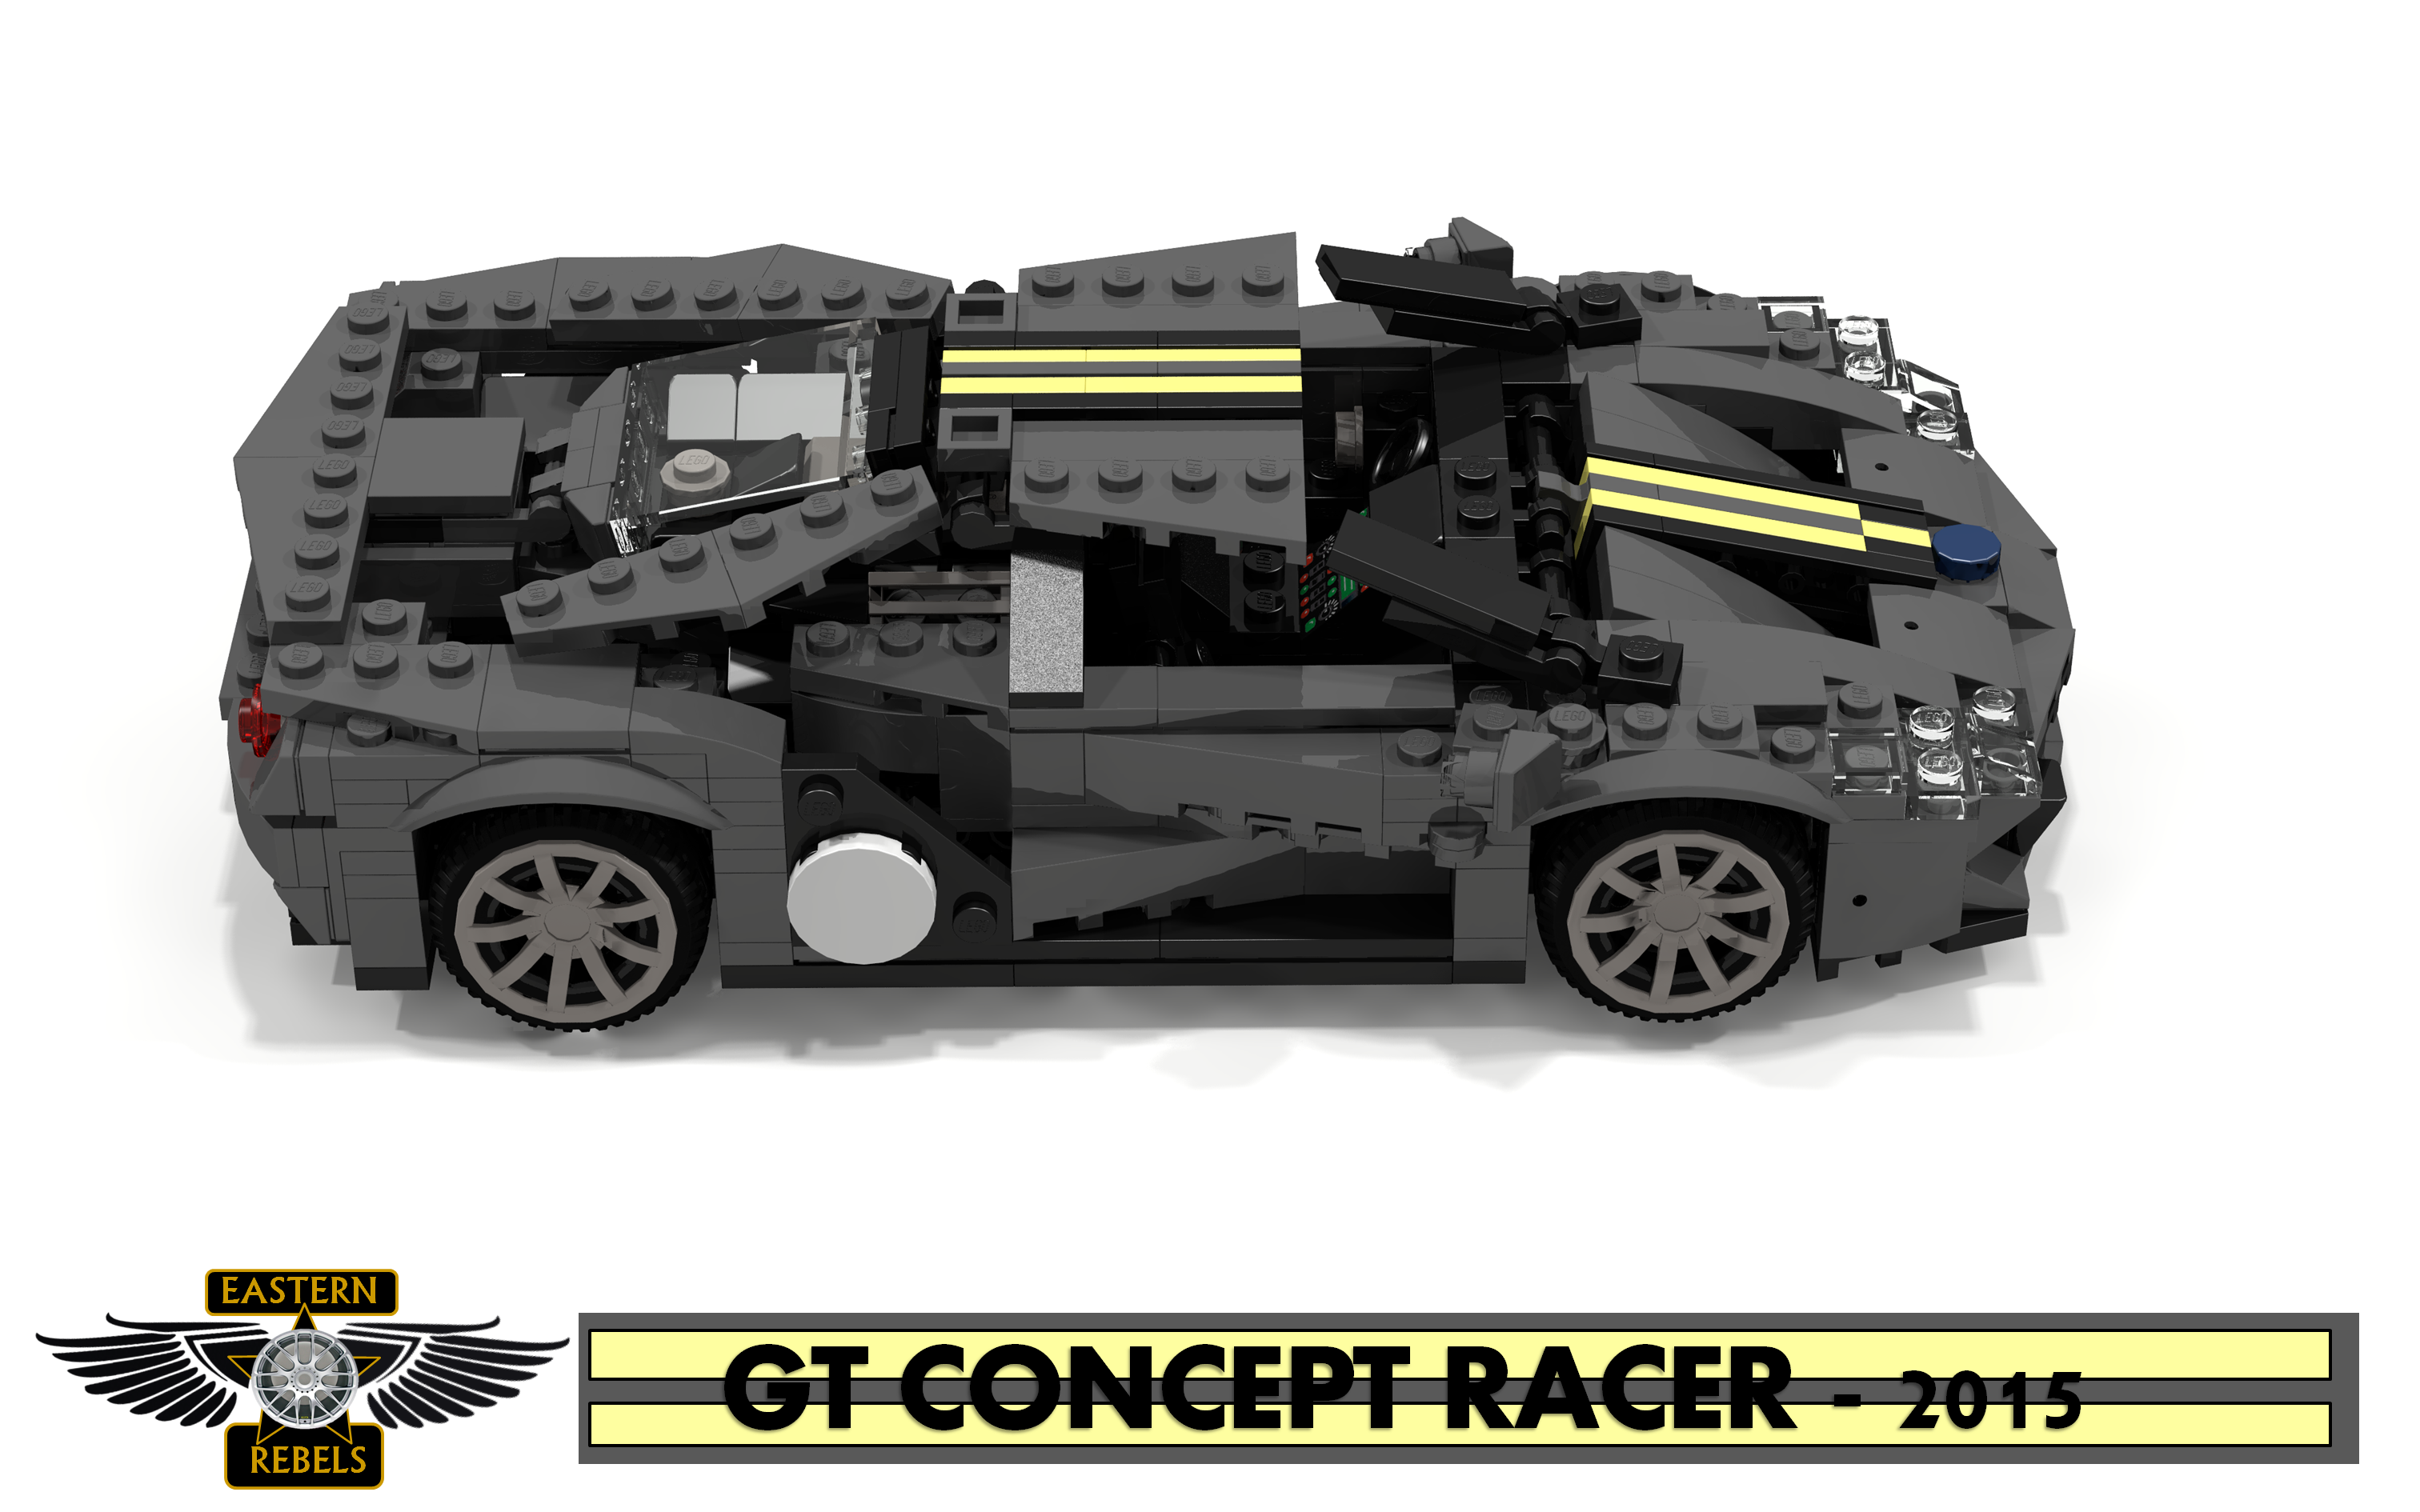 ford_gt_2016_concept_racer_05.png